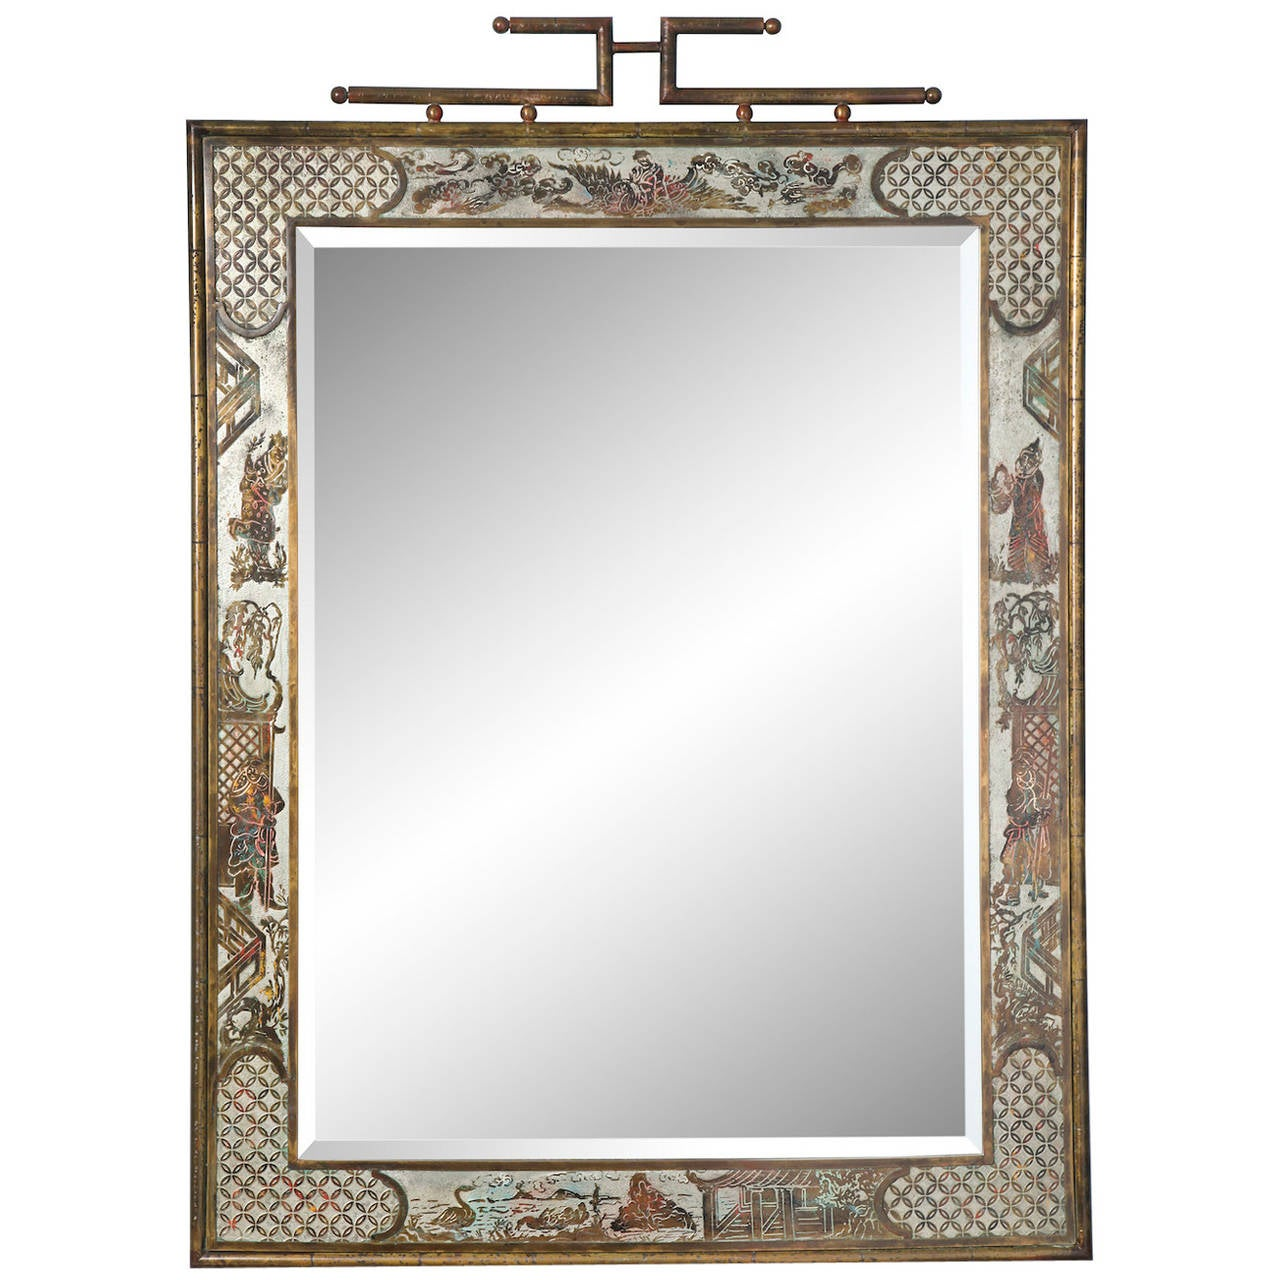 Philip and kelvin laverne mirror for sale at 1stdibs for Asian style mirror